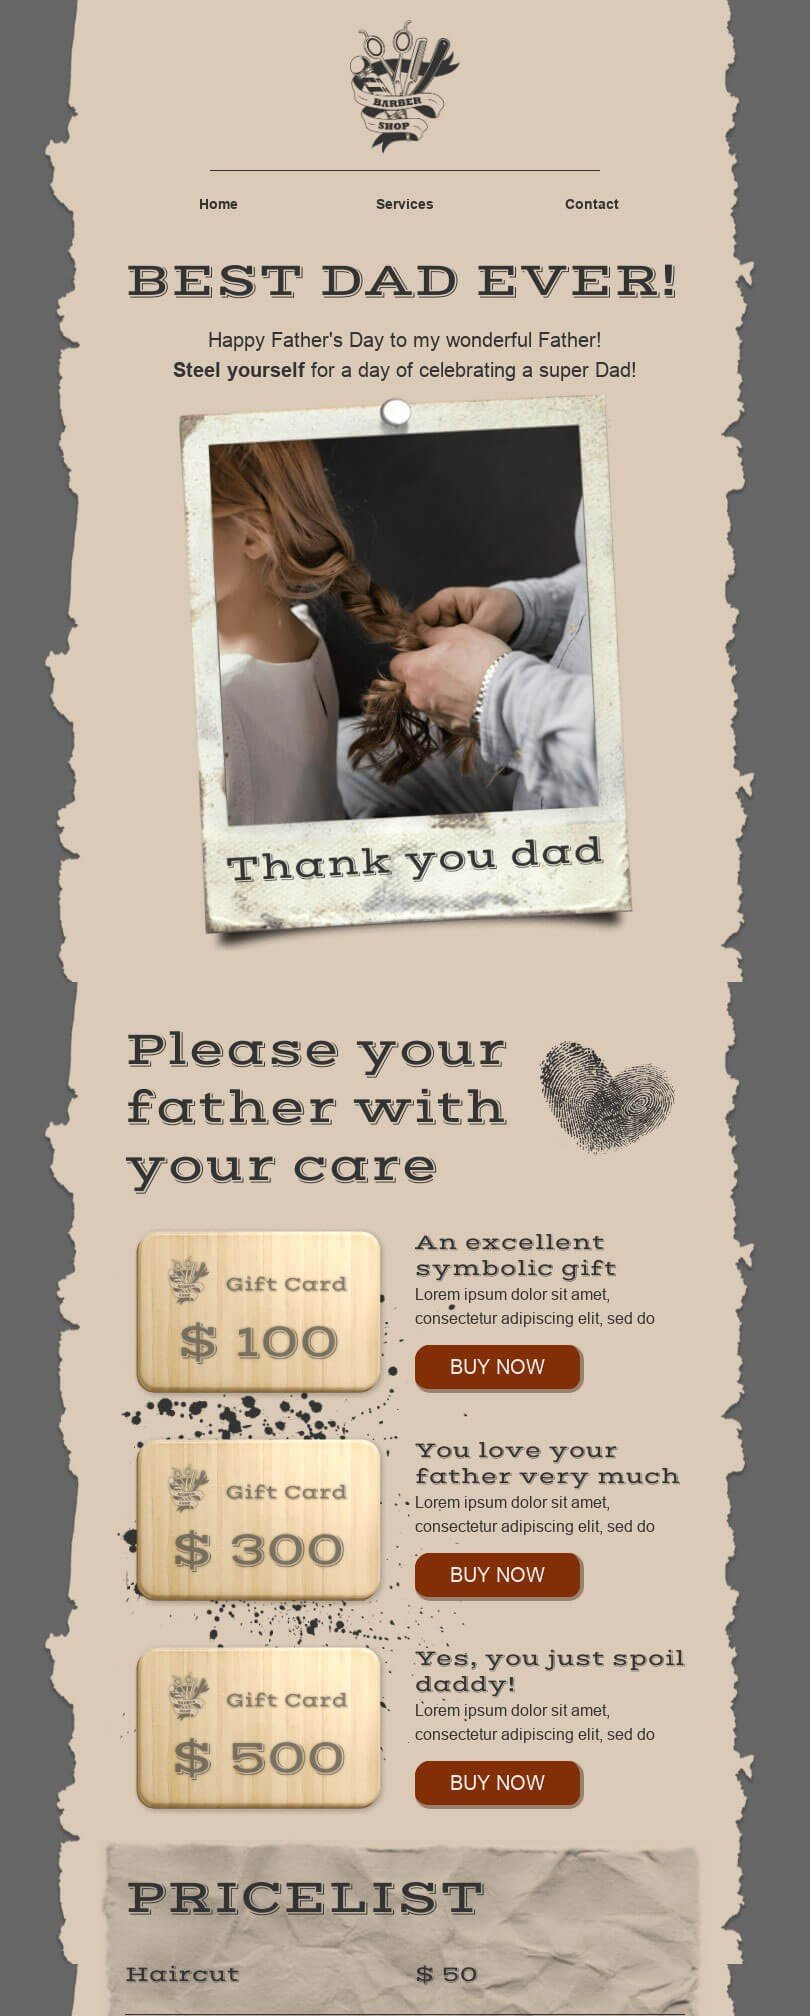 Father's Day Email Template «Thank you dad!» for Beauty & Personal Care industry desktop view